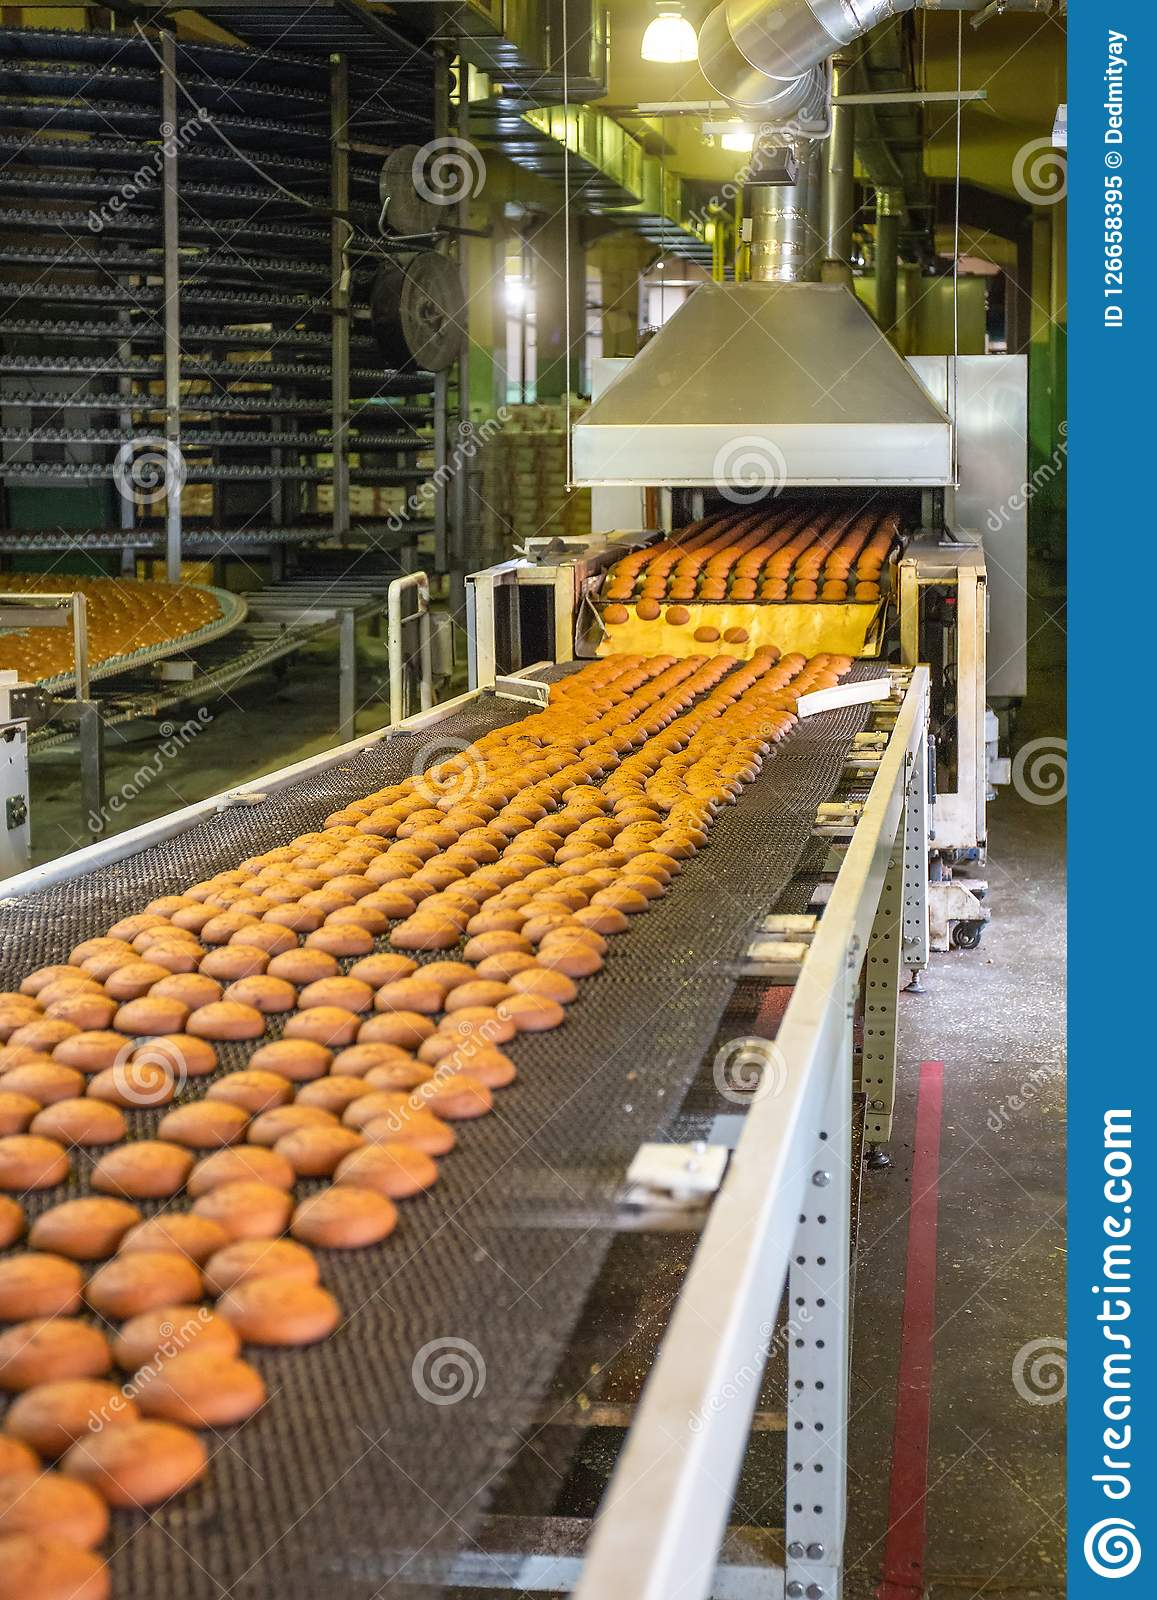 Industry fabrication biscuits and crackers